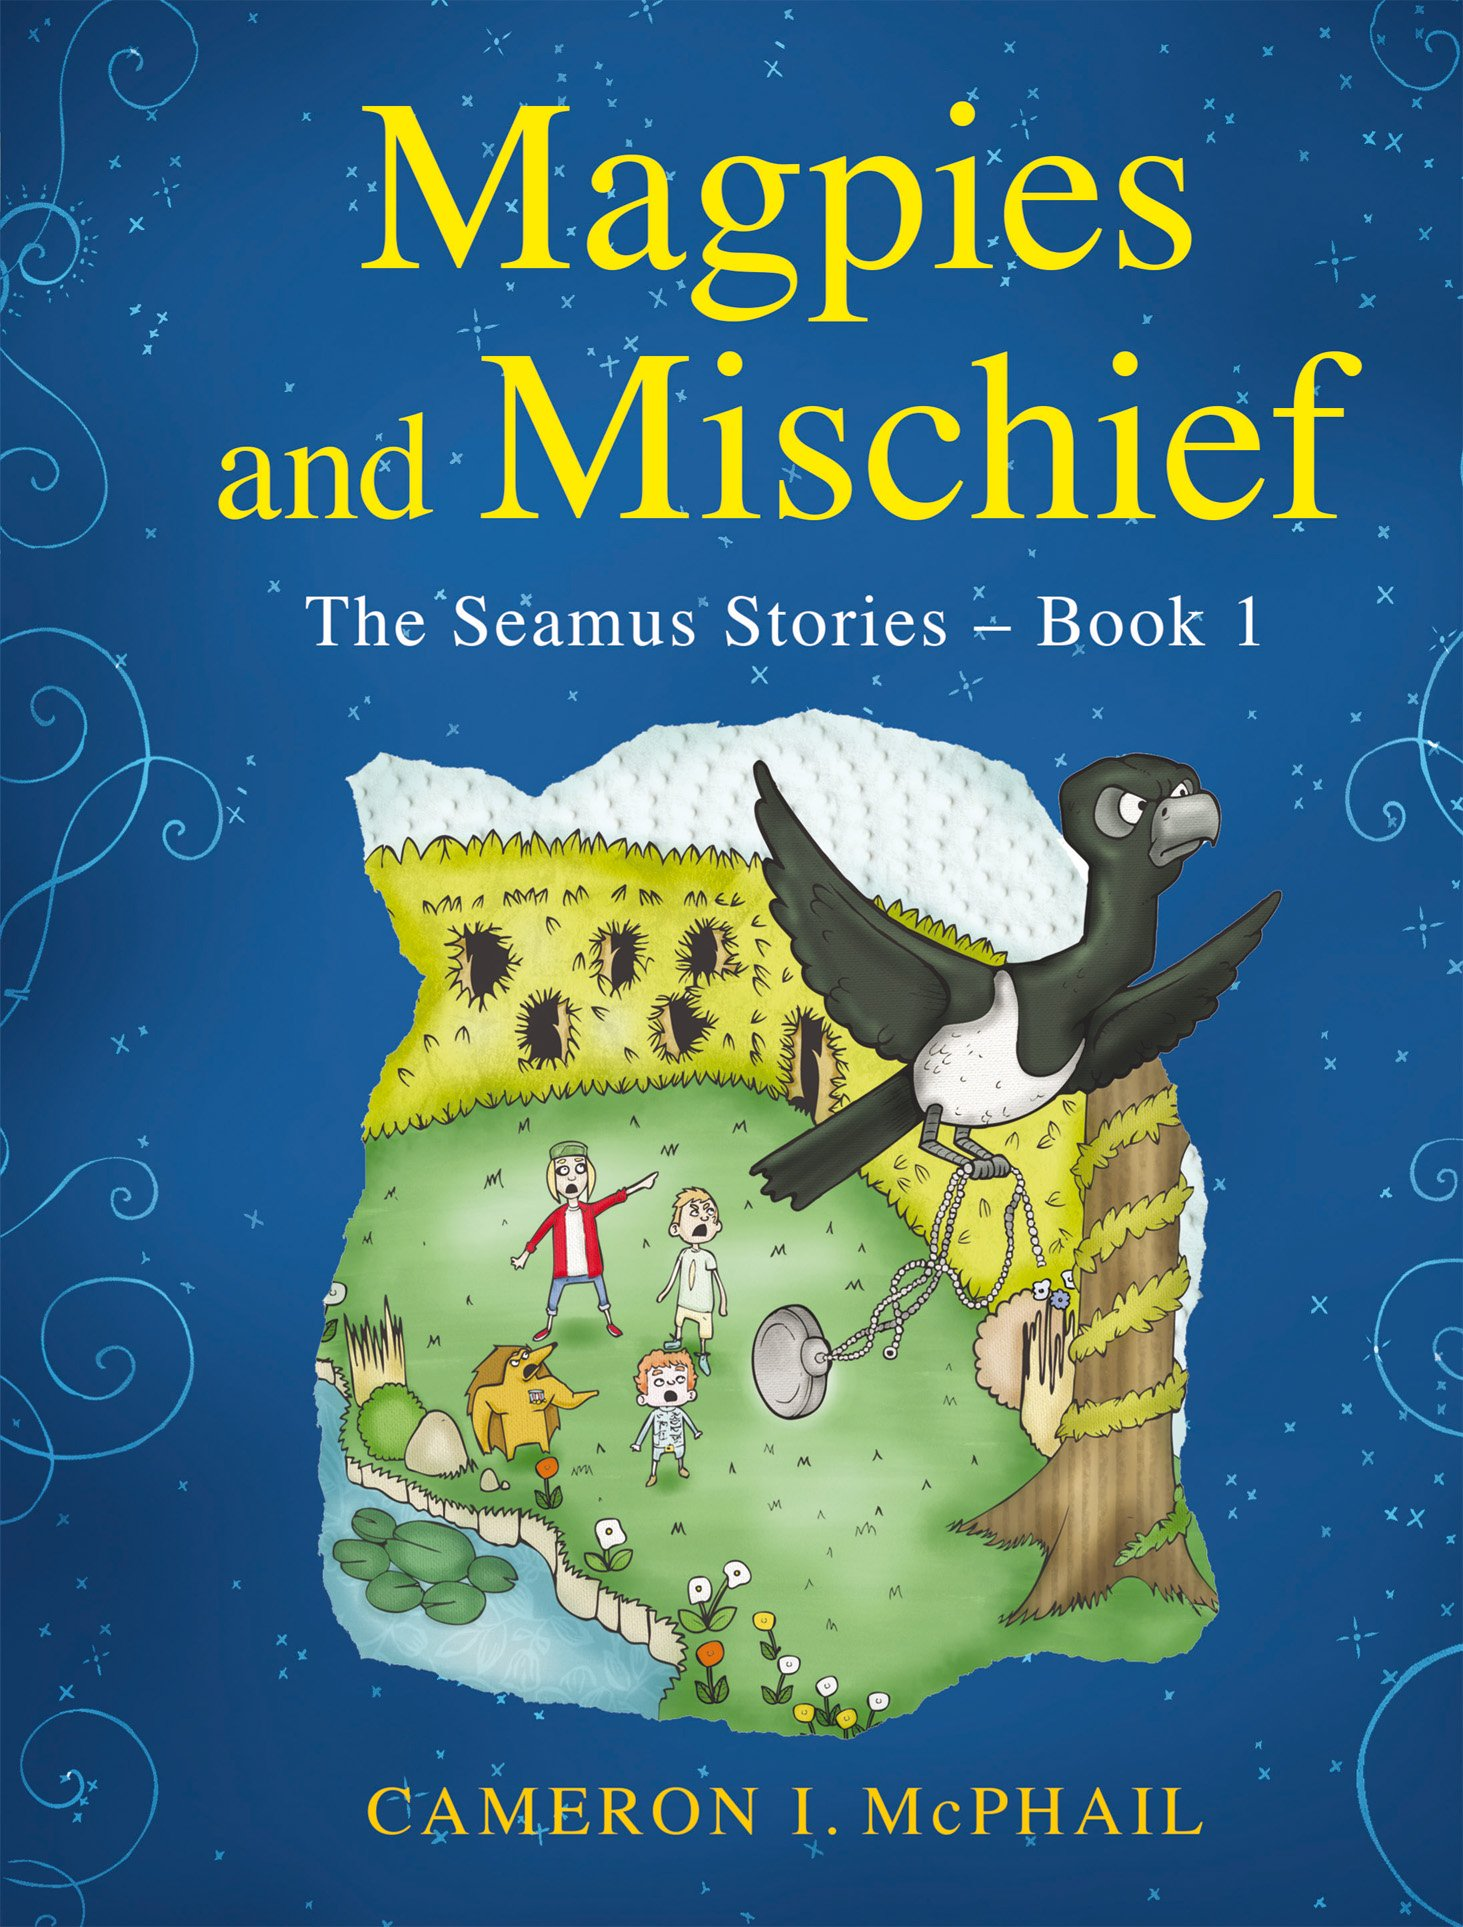 Download Magpies and Mischief The Seamus Stories - Book 1 PDF